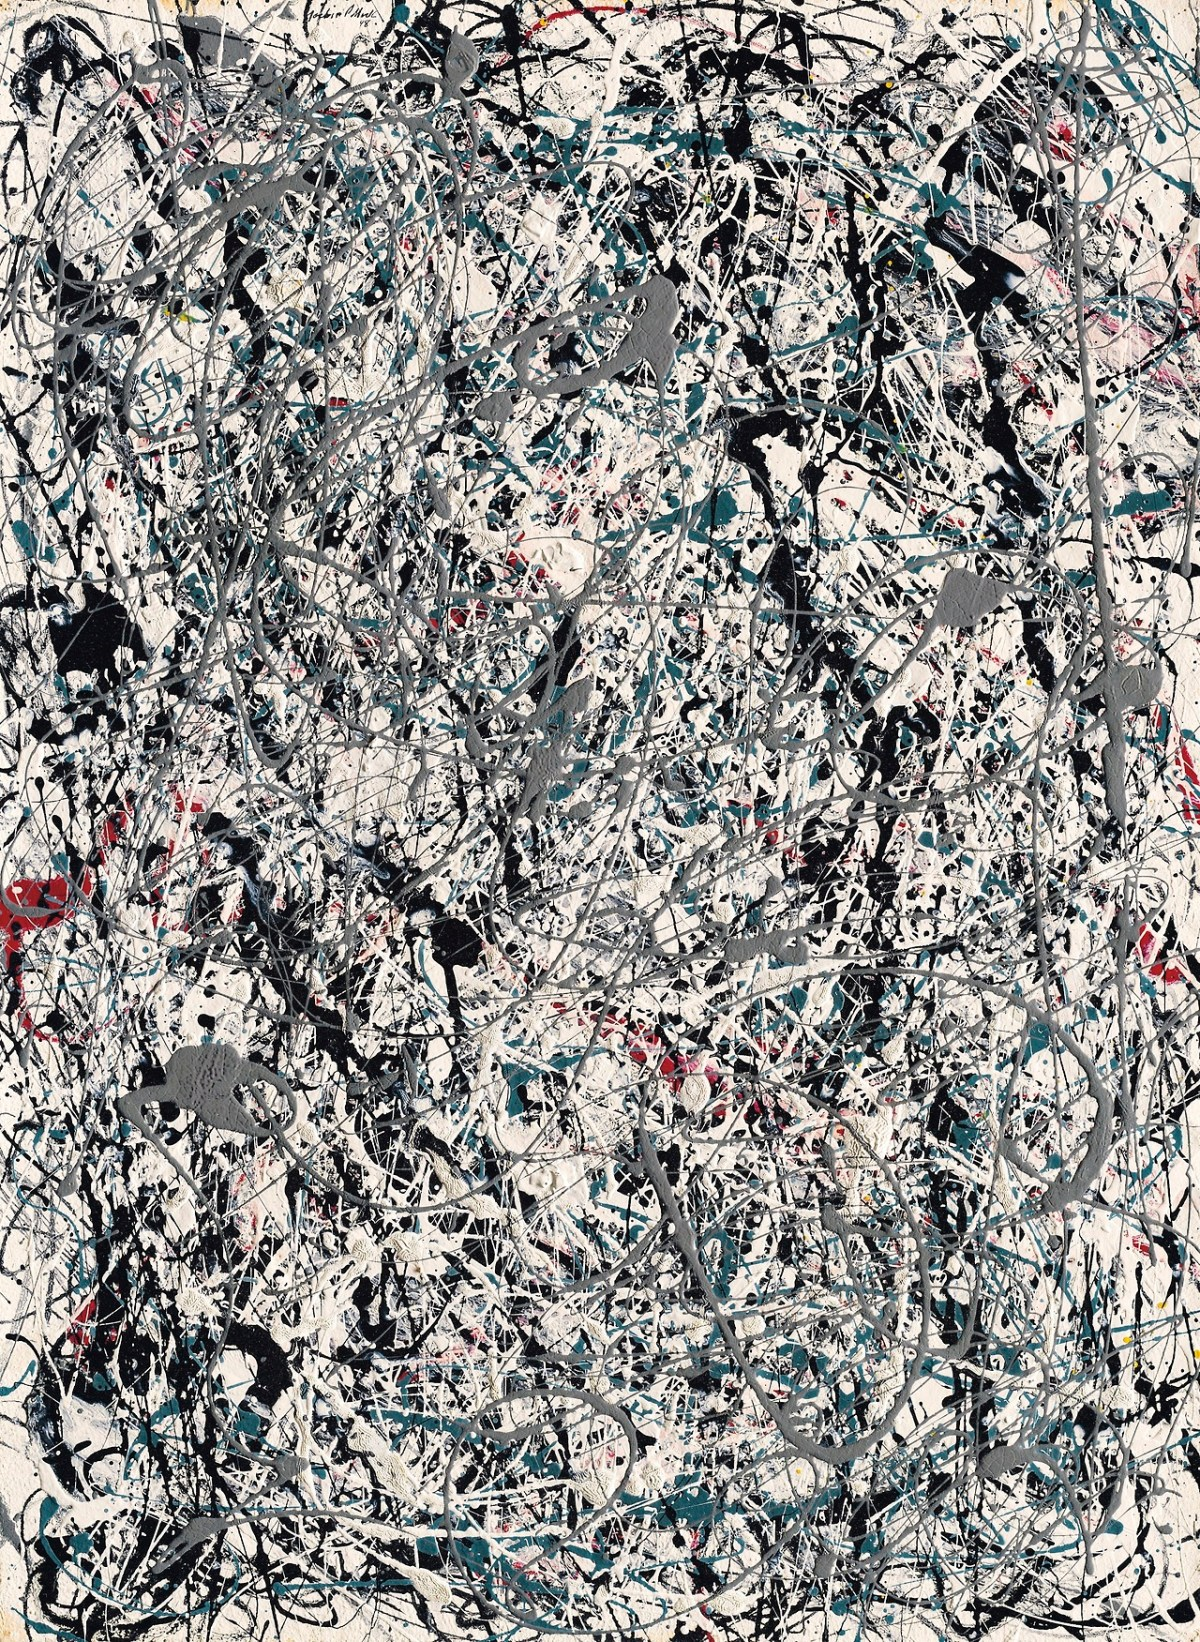 Number 19, 1948 by Jackson Pollock